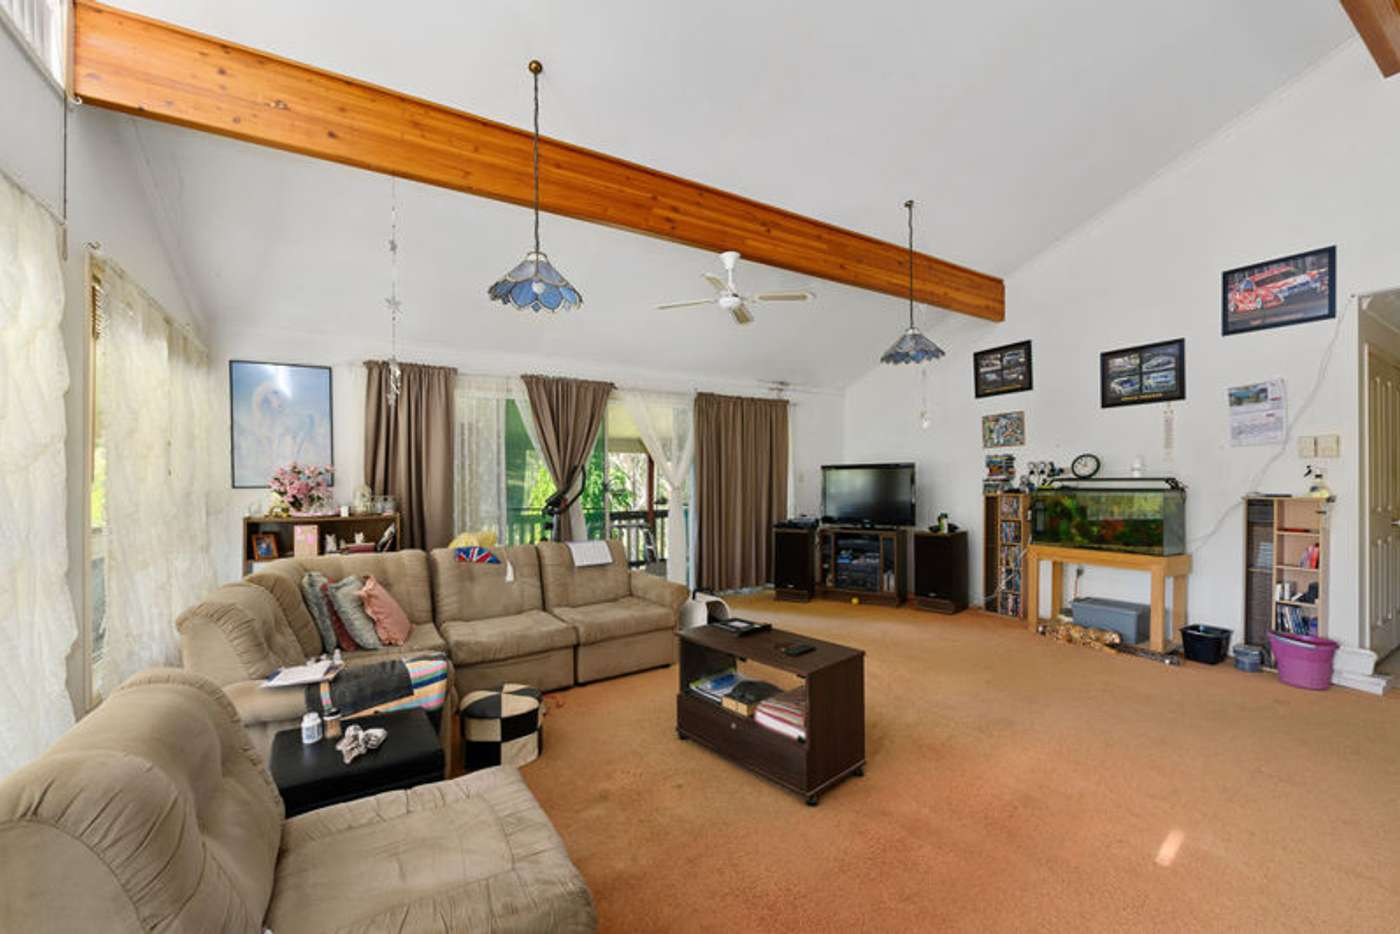 Seventh view of Homely house listing, 81 Emerald Heights Dr, Emerald Beach NSW 2456